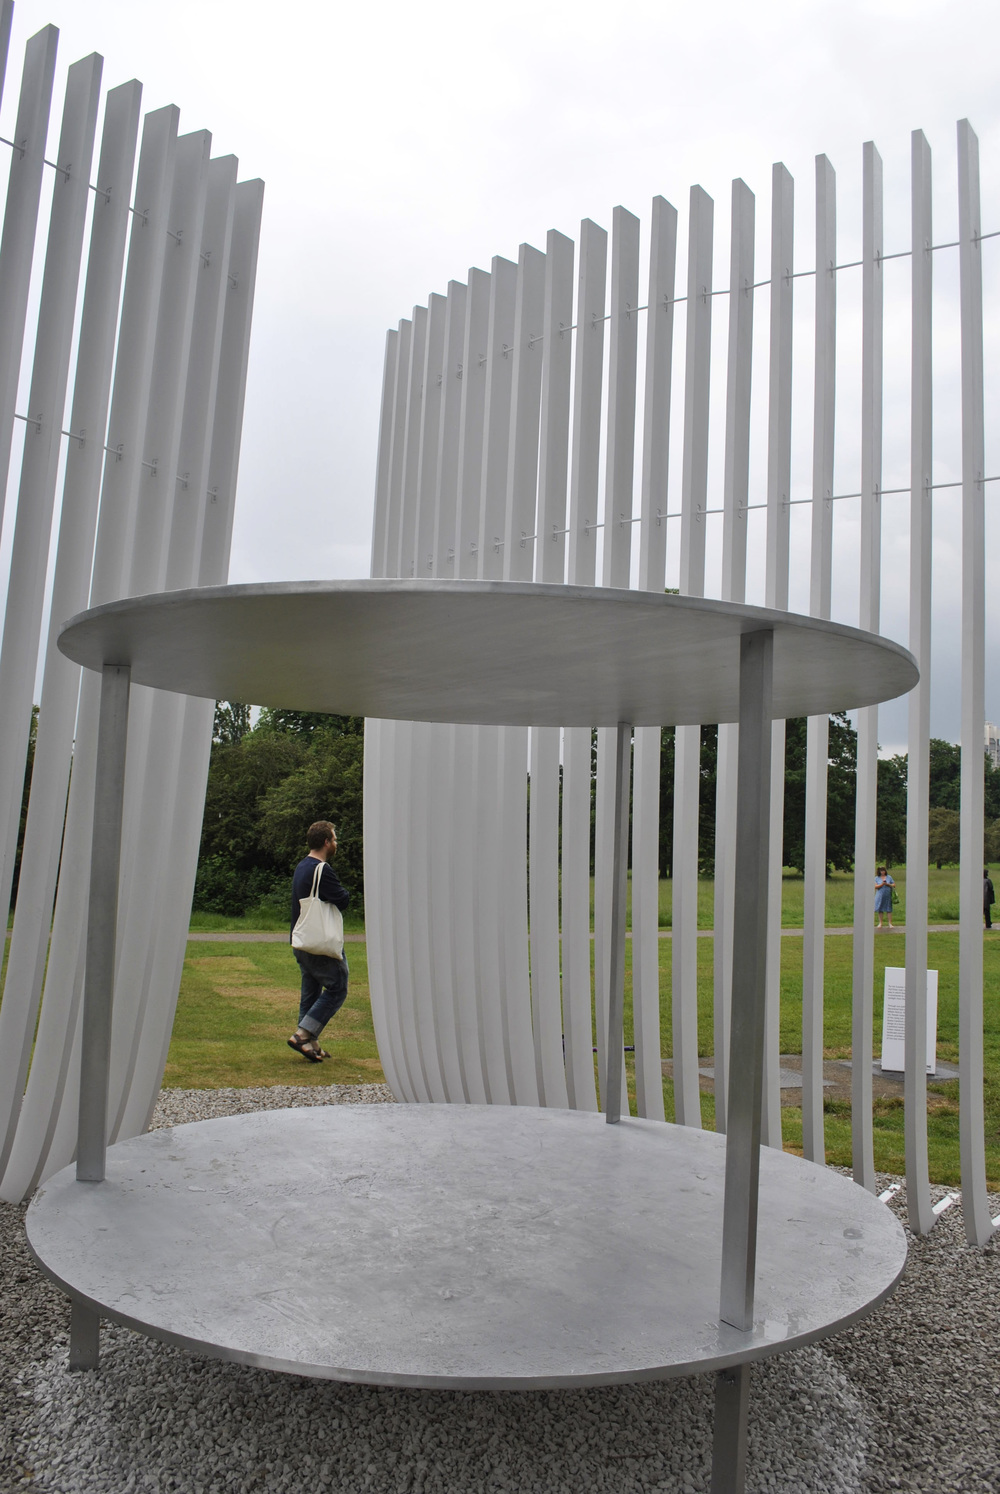 ©Detail Movement - Serpentine Gallery  Summer House Asif Khan - Sun and Moon shelter